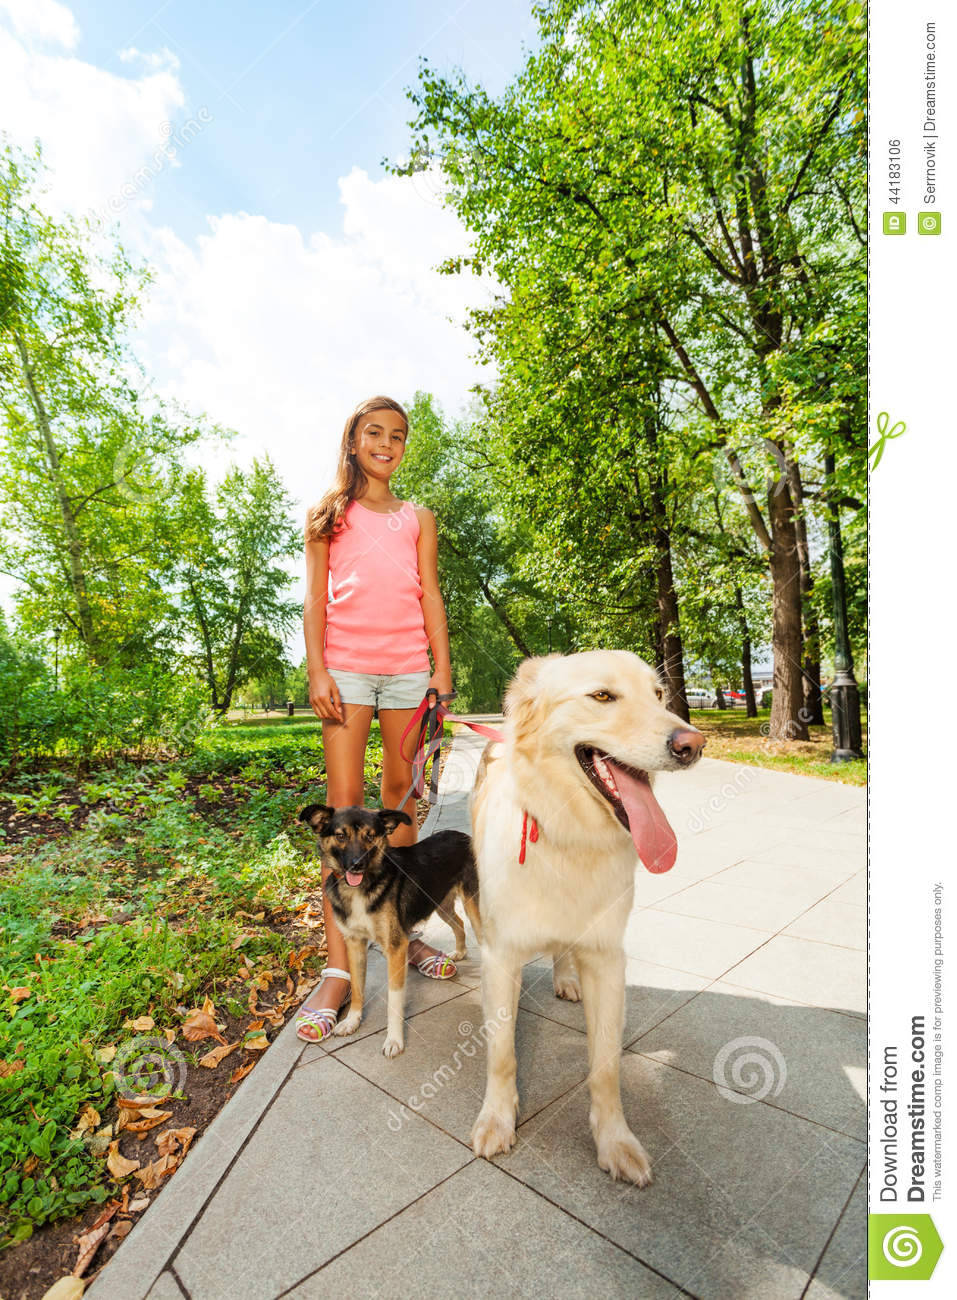 how to start a dog walking business as a teenager